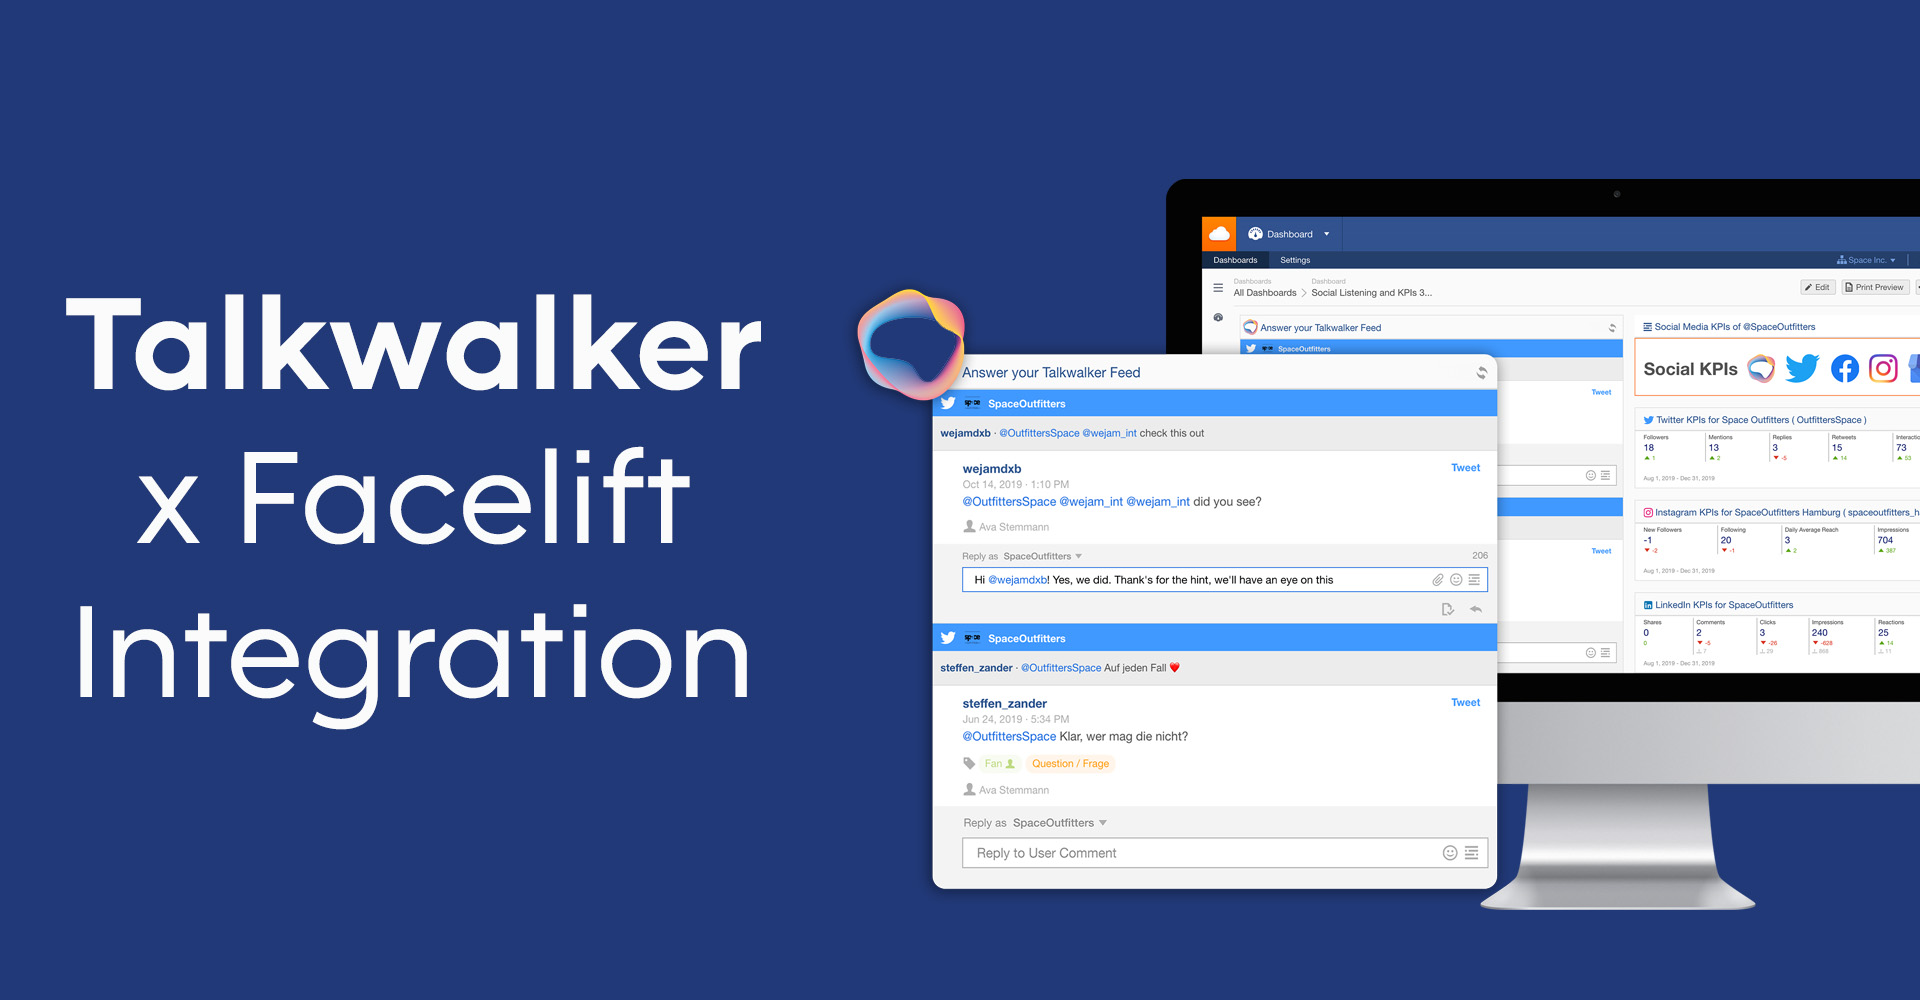 Talkwalker Facelift Integration